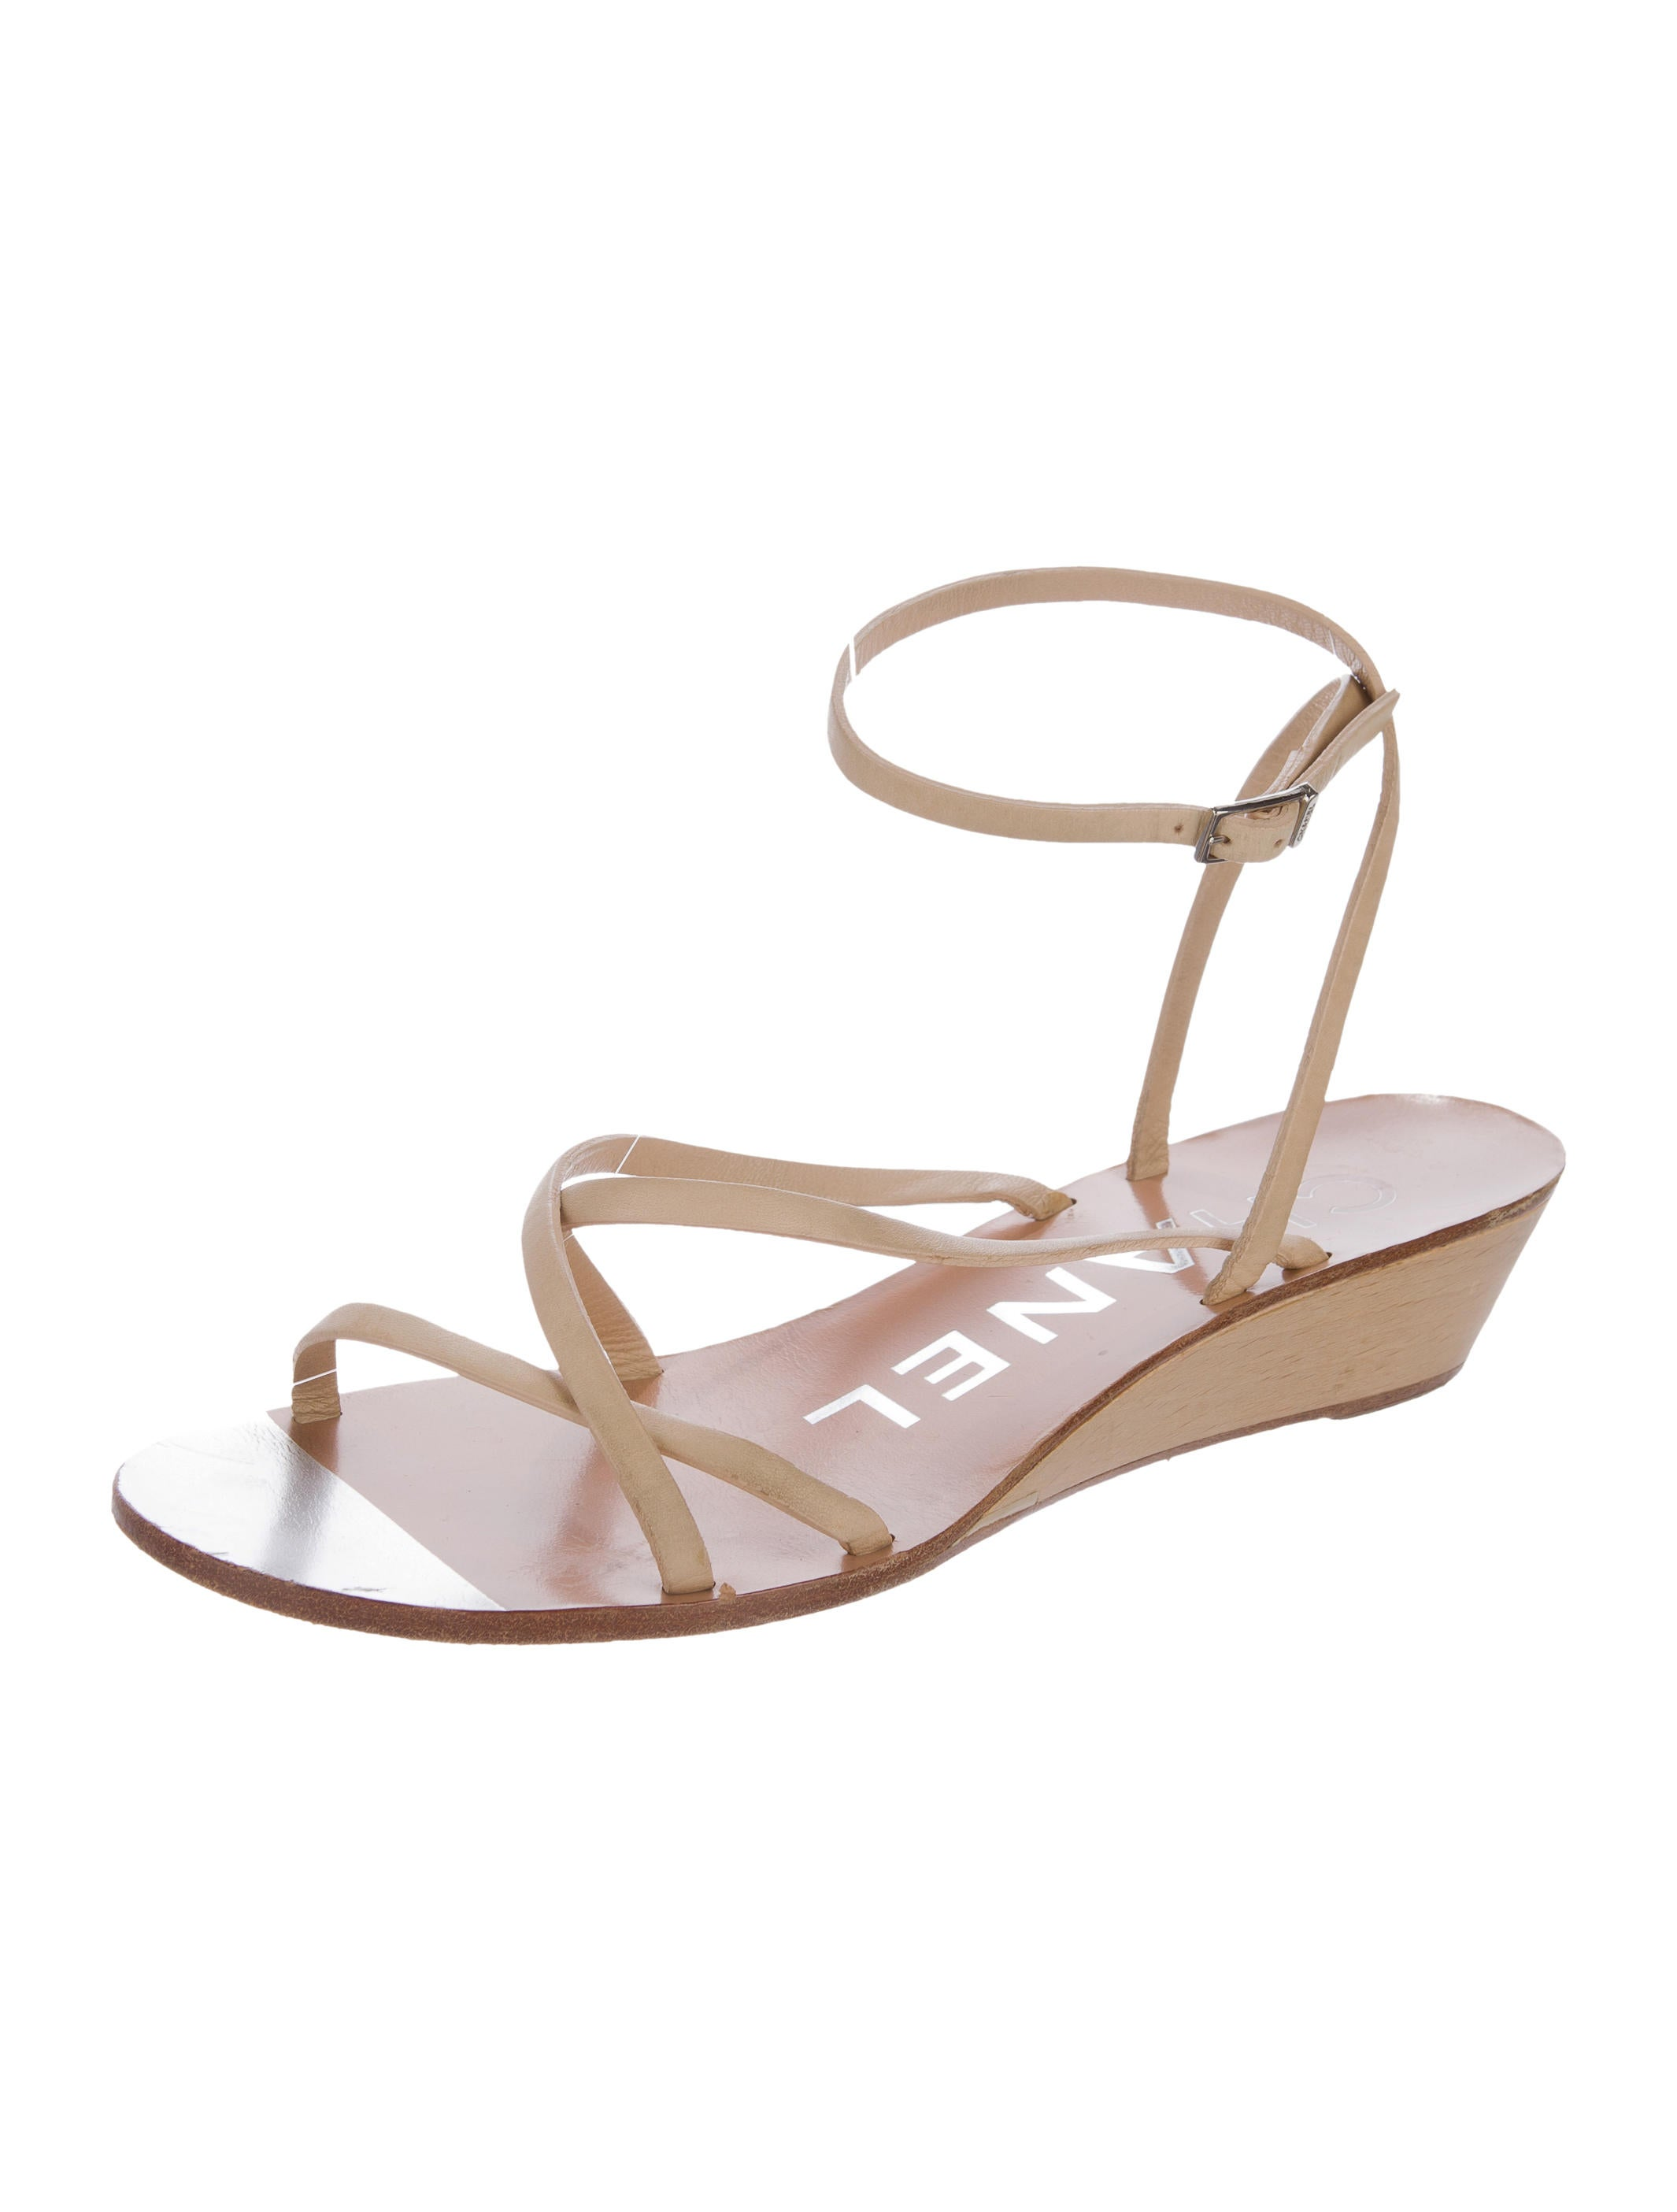 Chanel Leather Wedge Sandals - Shoes - CHA163059 | The RealReal